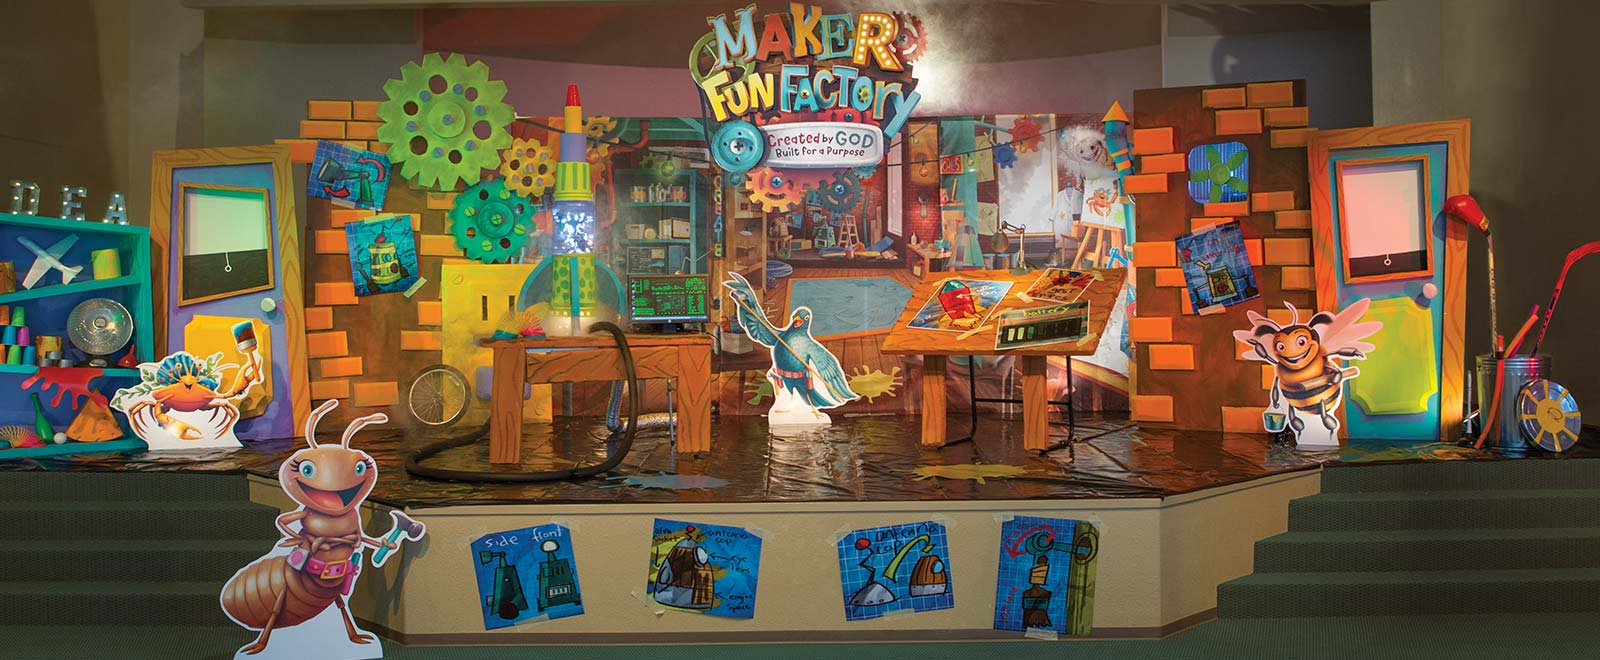 Maker Fun Factory Vbs 2017 Group Vacation Bible School